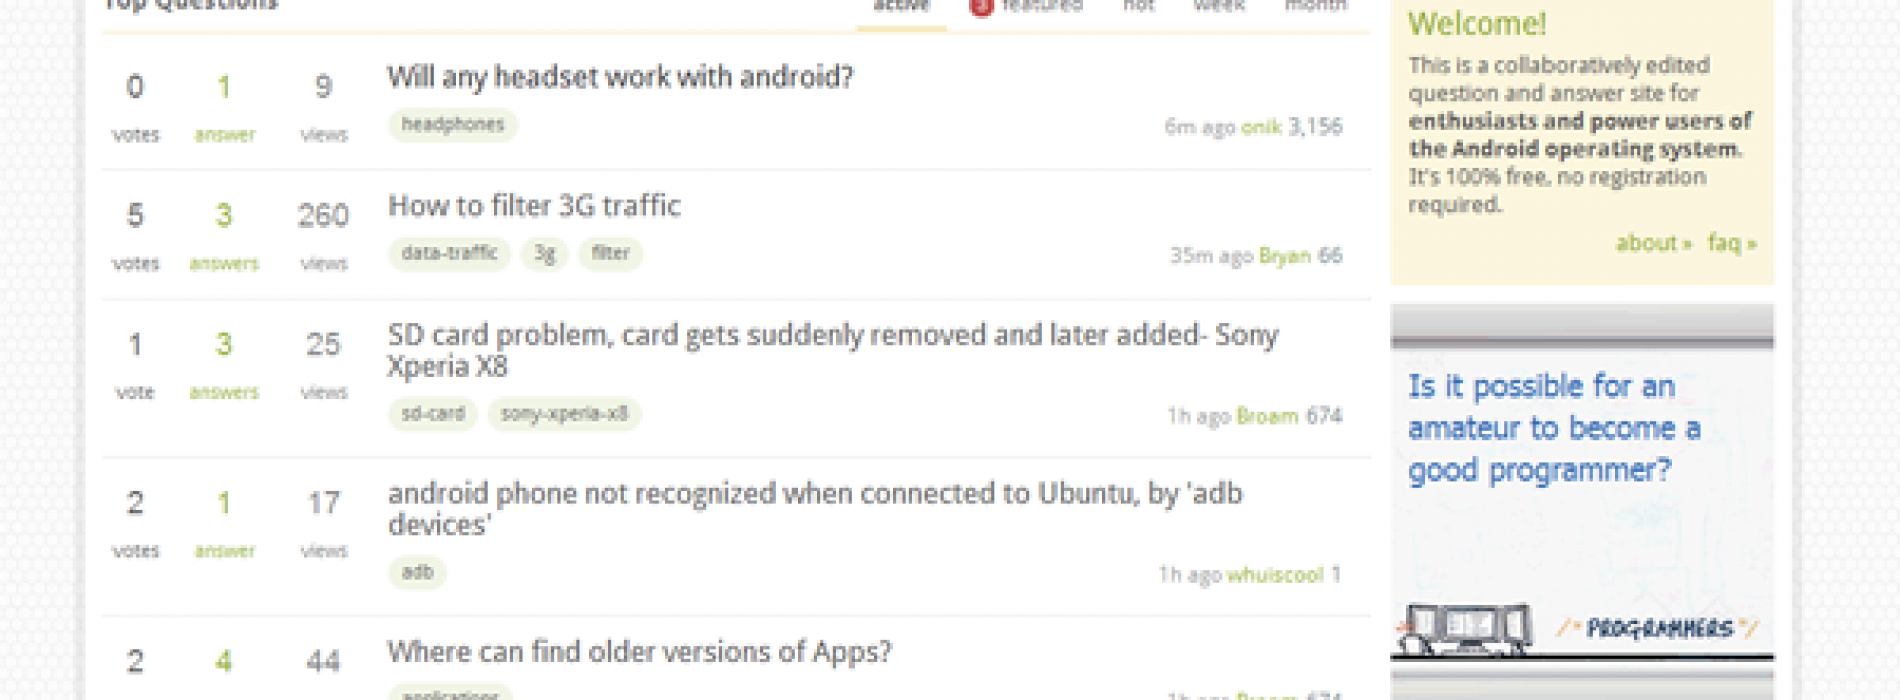 Stack Exchange provides answers to your Android questions